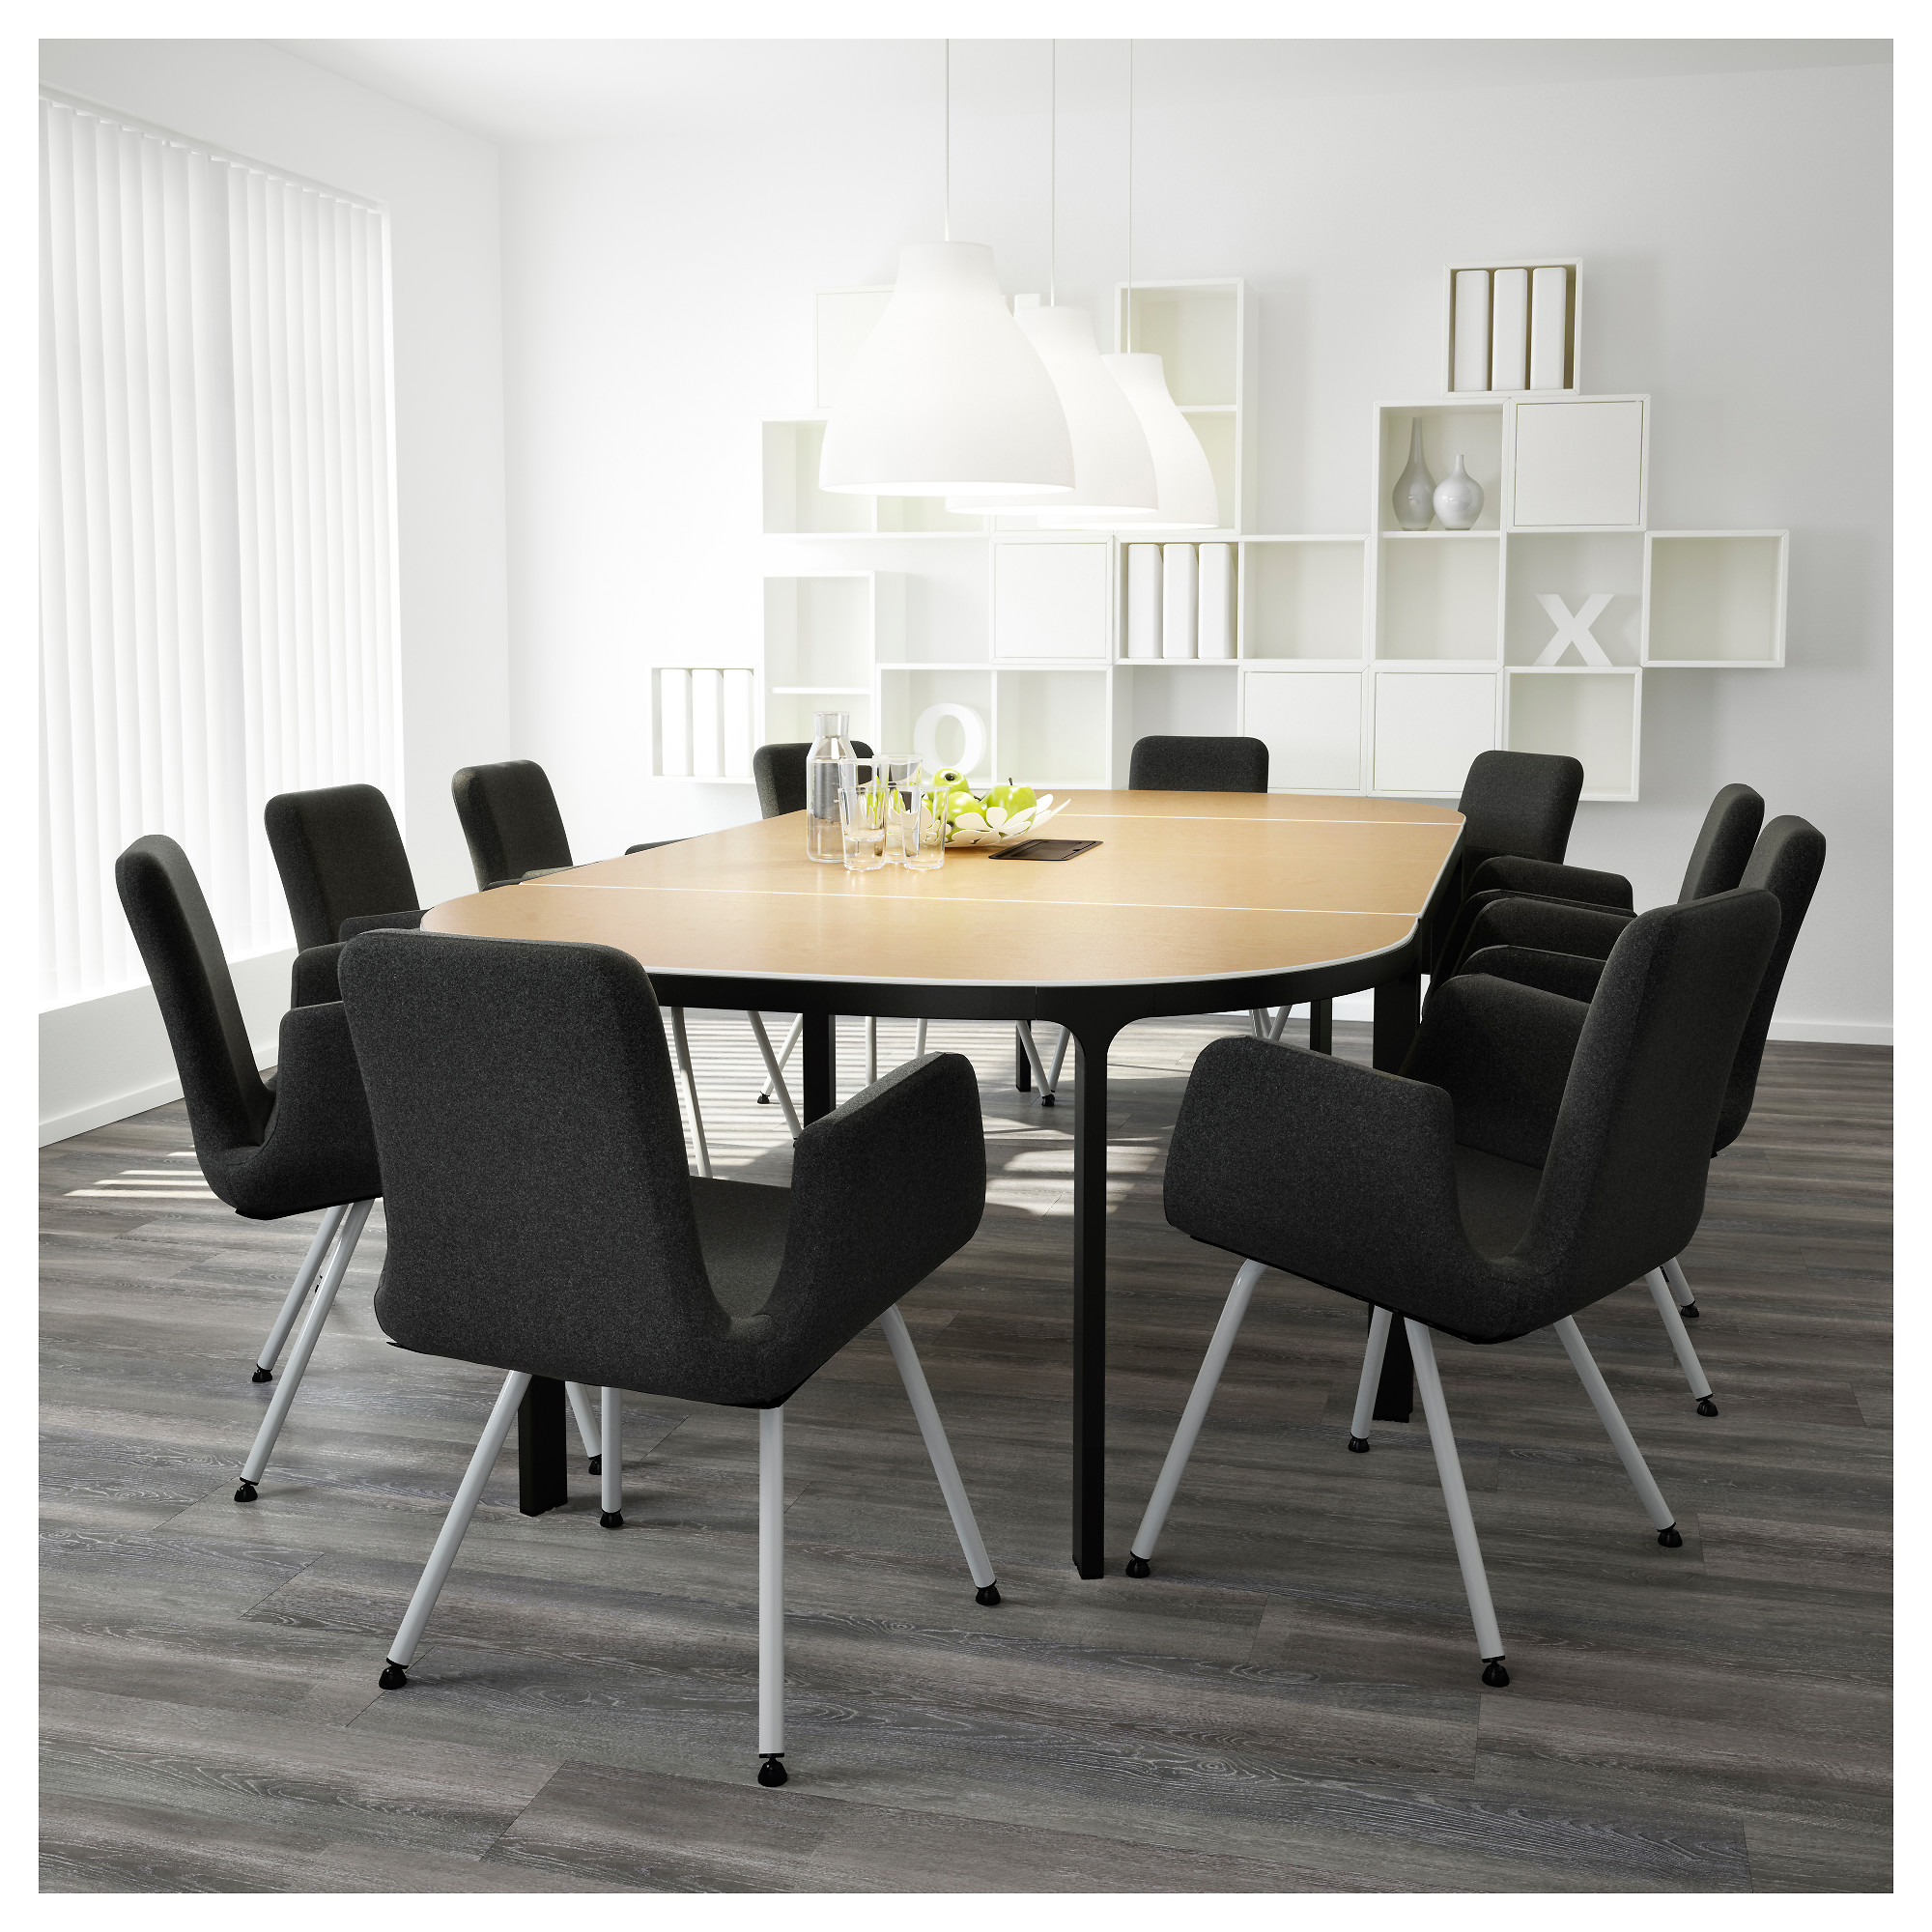 BEKANT Conference table birch veneer black IKEA